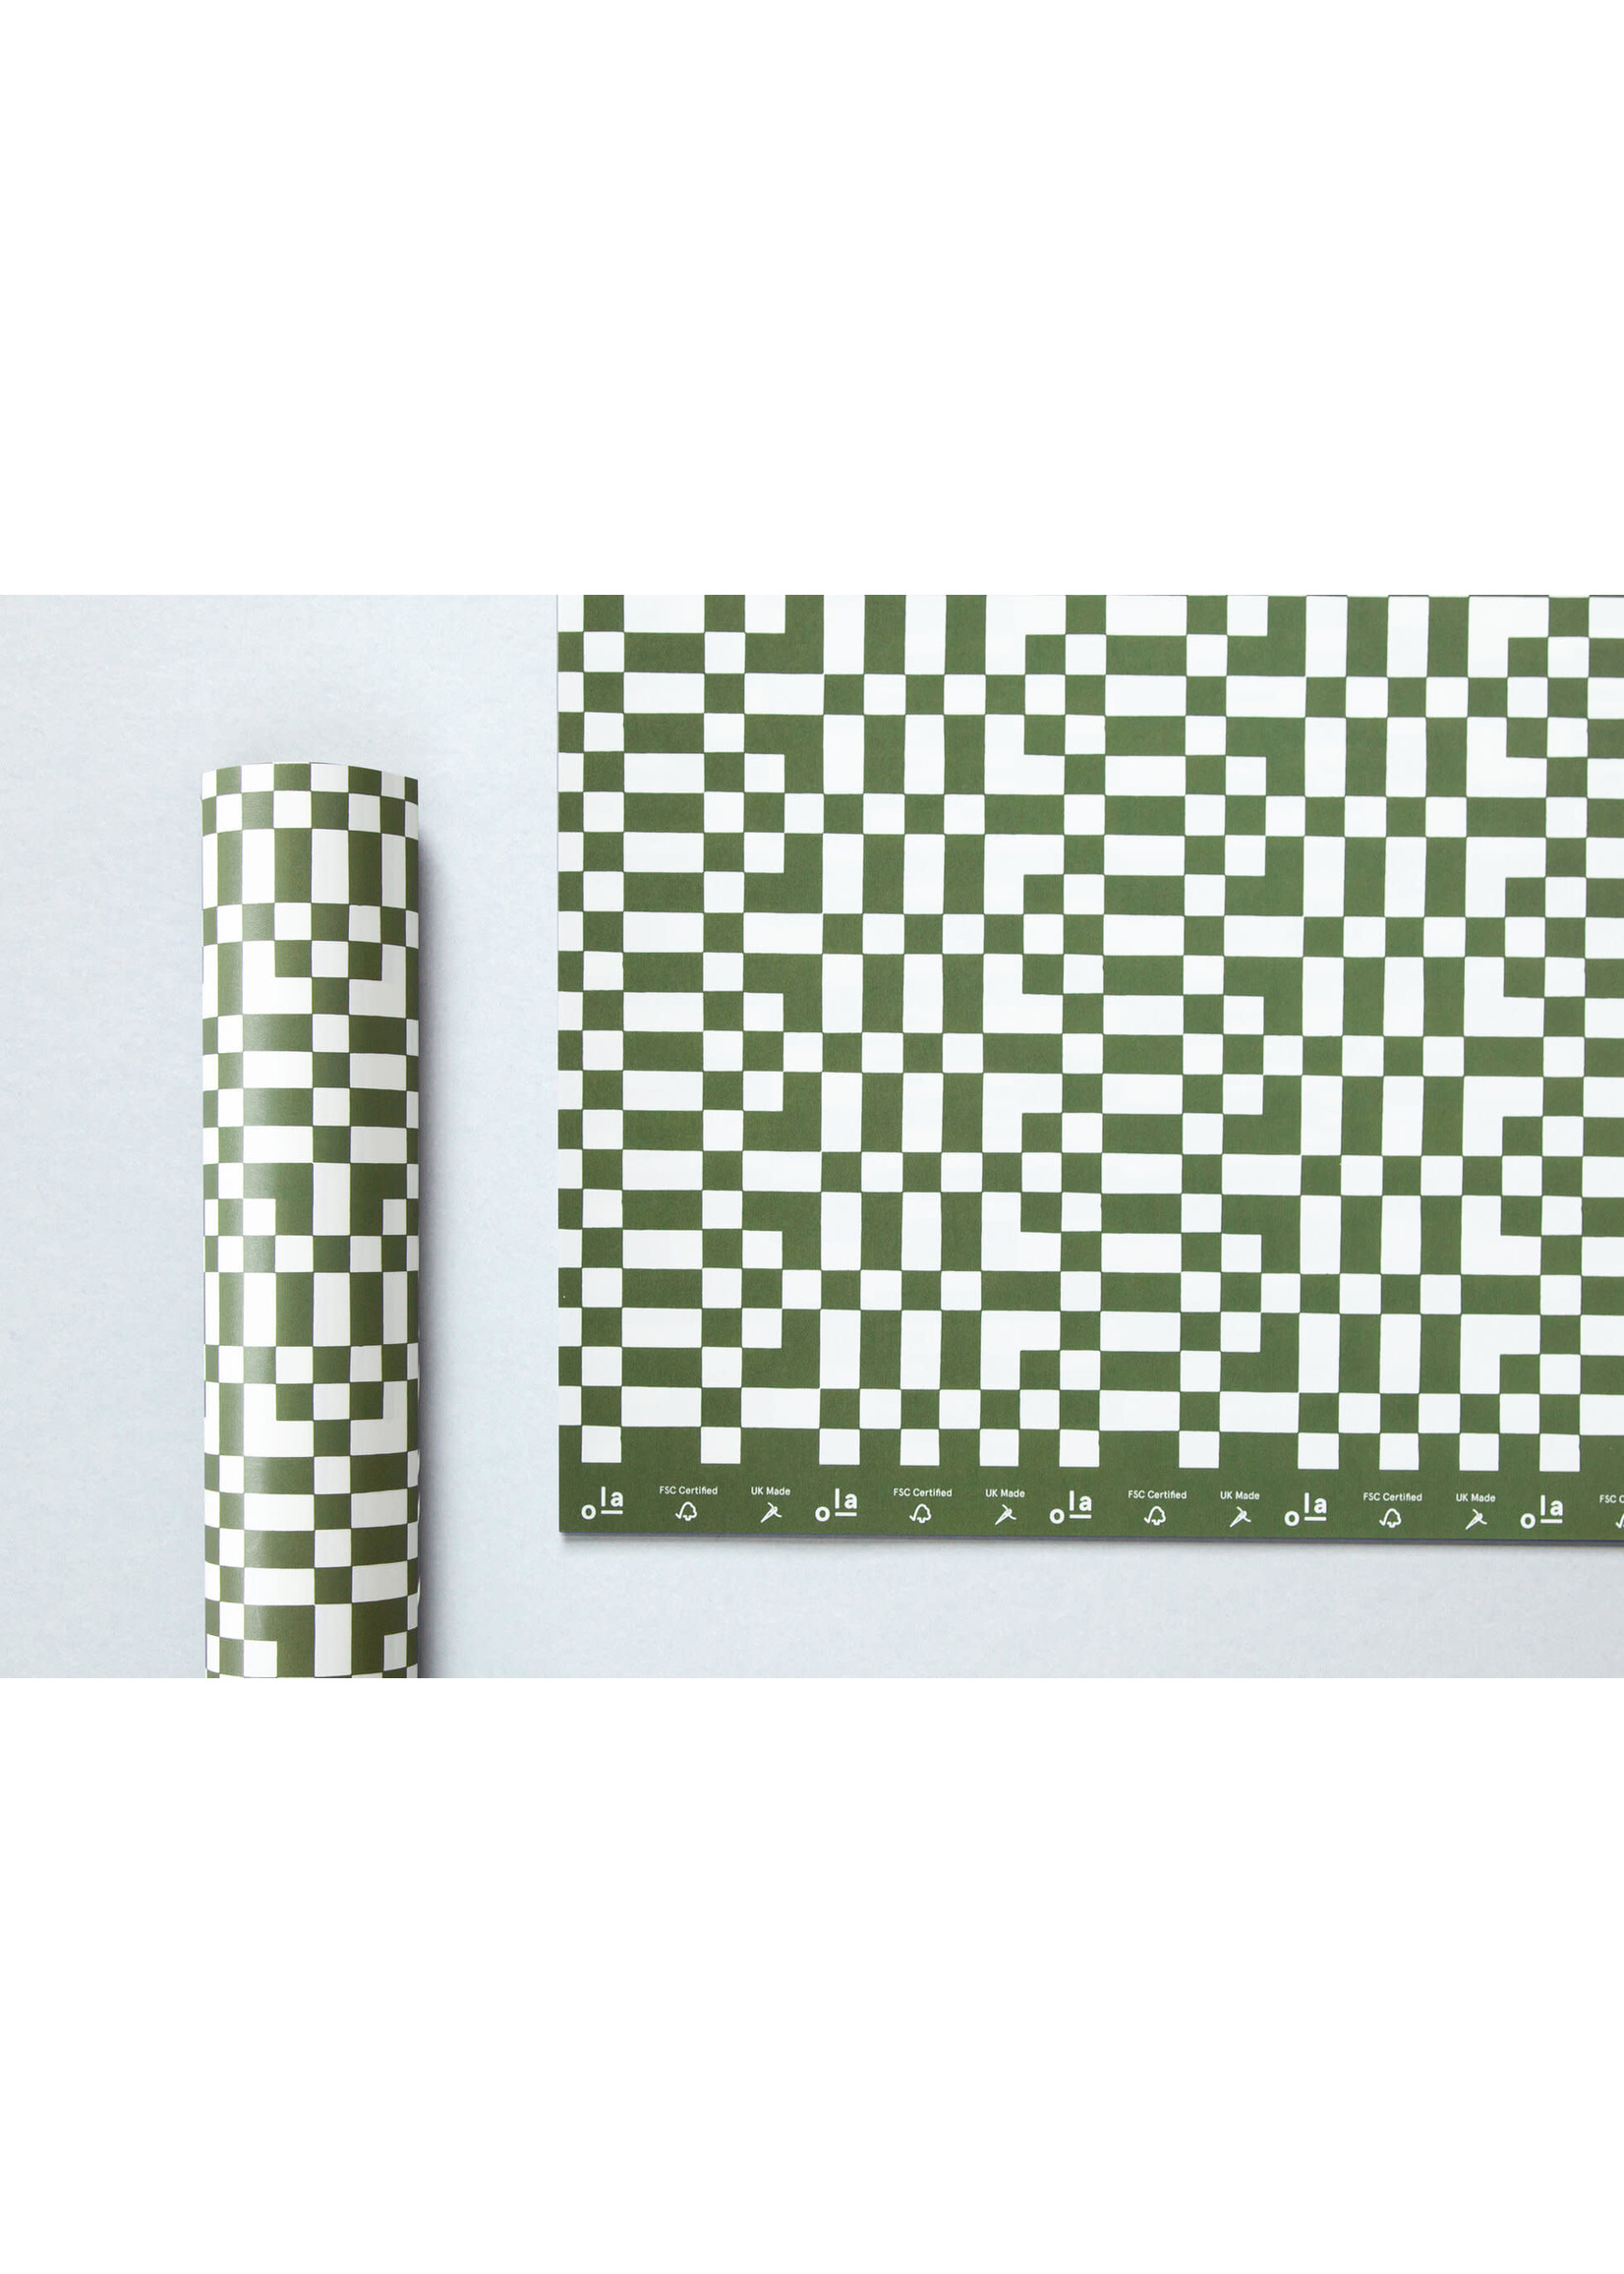 Ola Ola Patterned Papers: Otti print in Olive Green